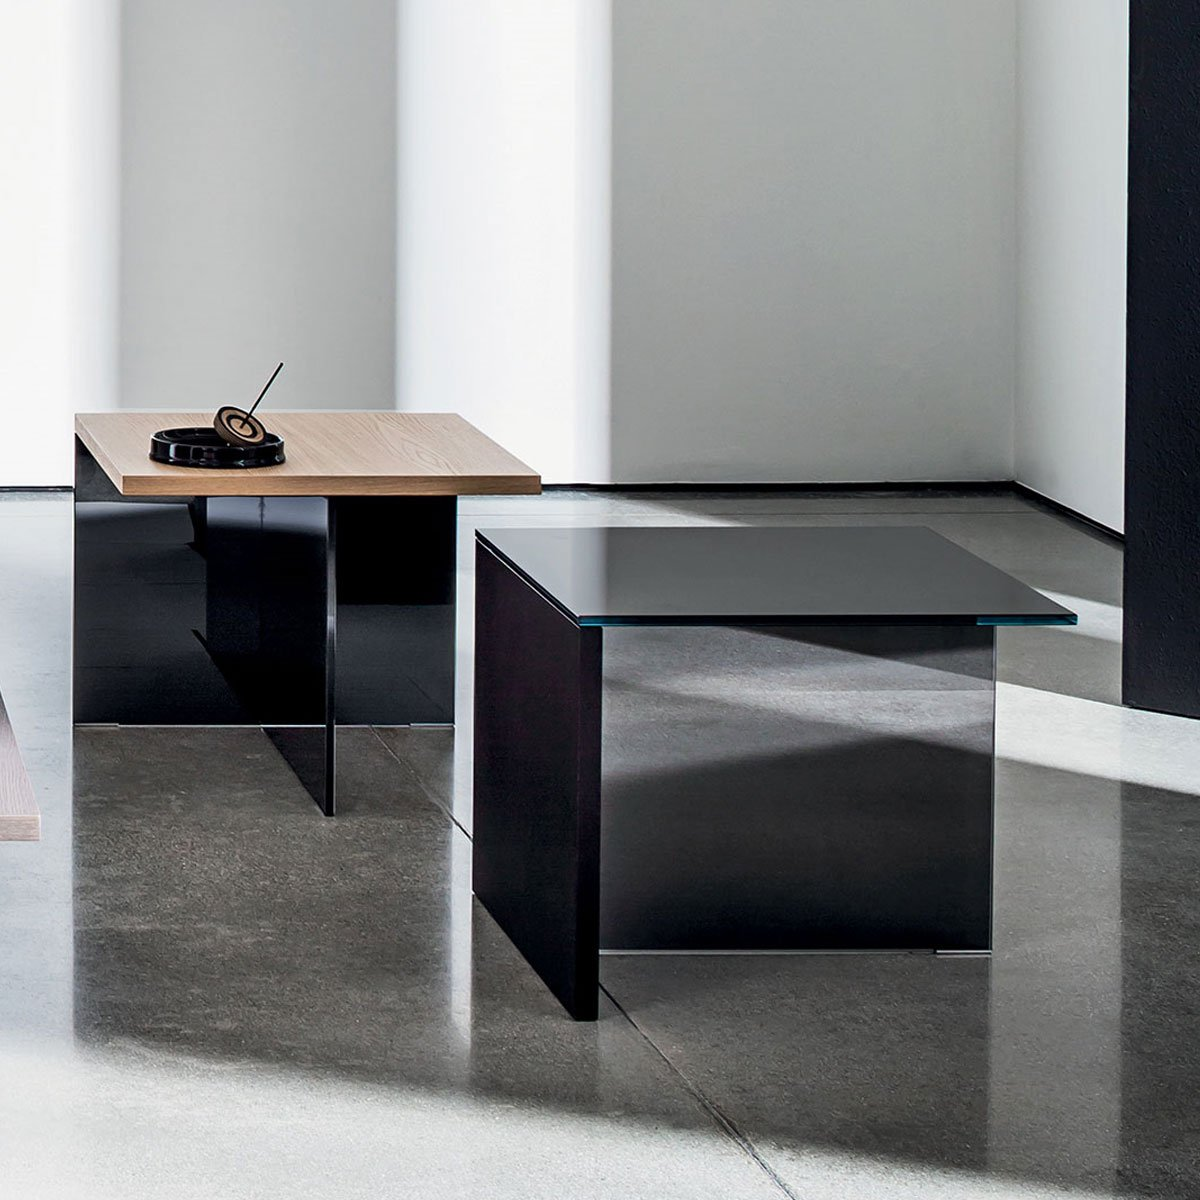 Regolo Square Glass and Wood Coffee Table